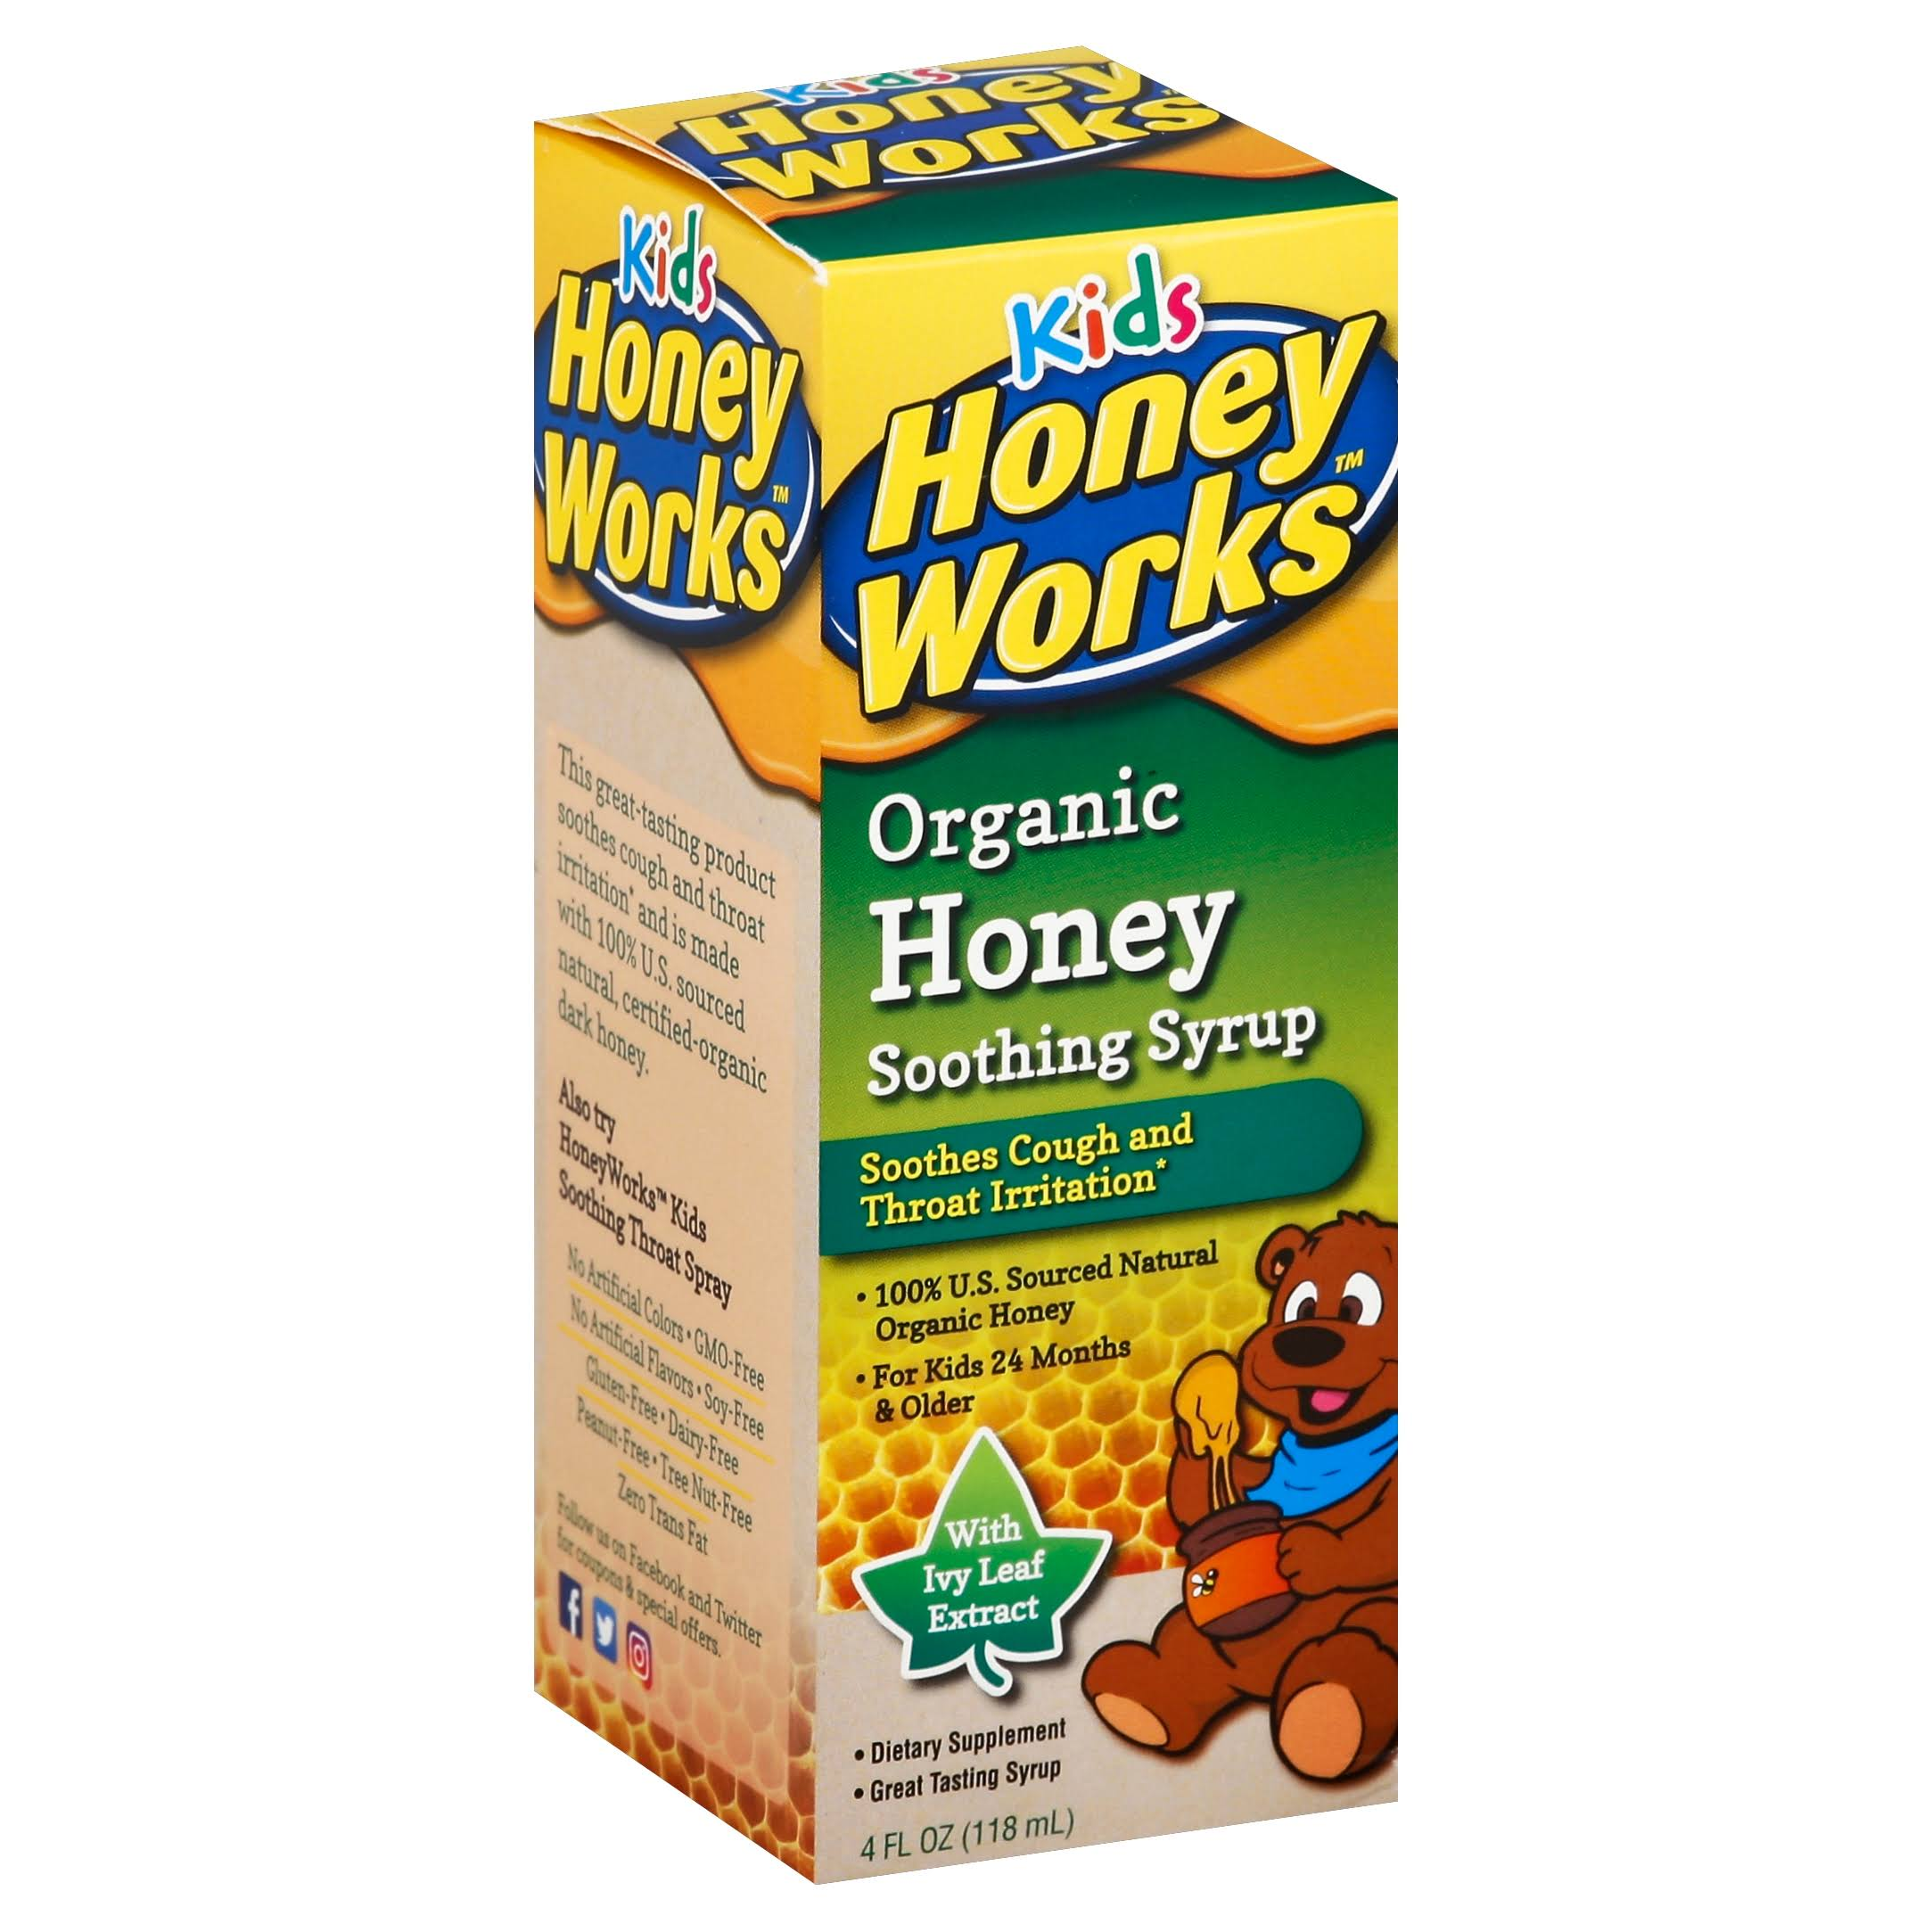 Honey Works Kids Organic Honey Soothing Syrup - 4oz